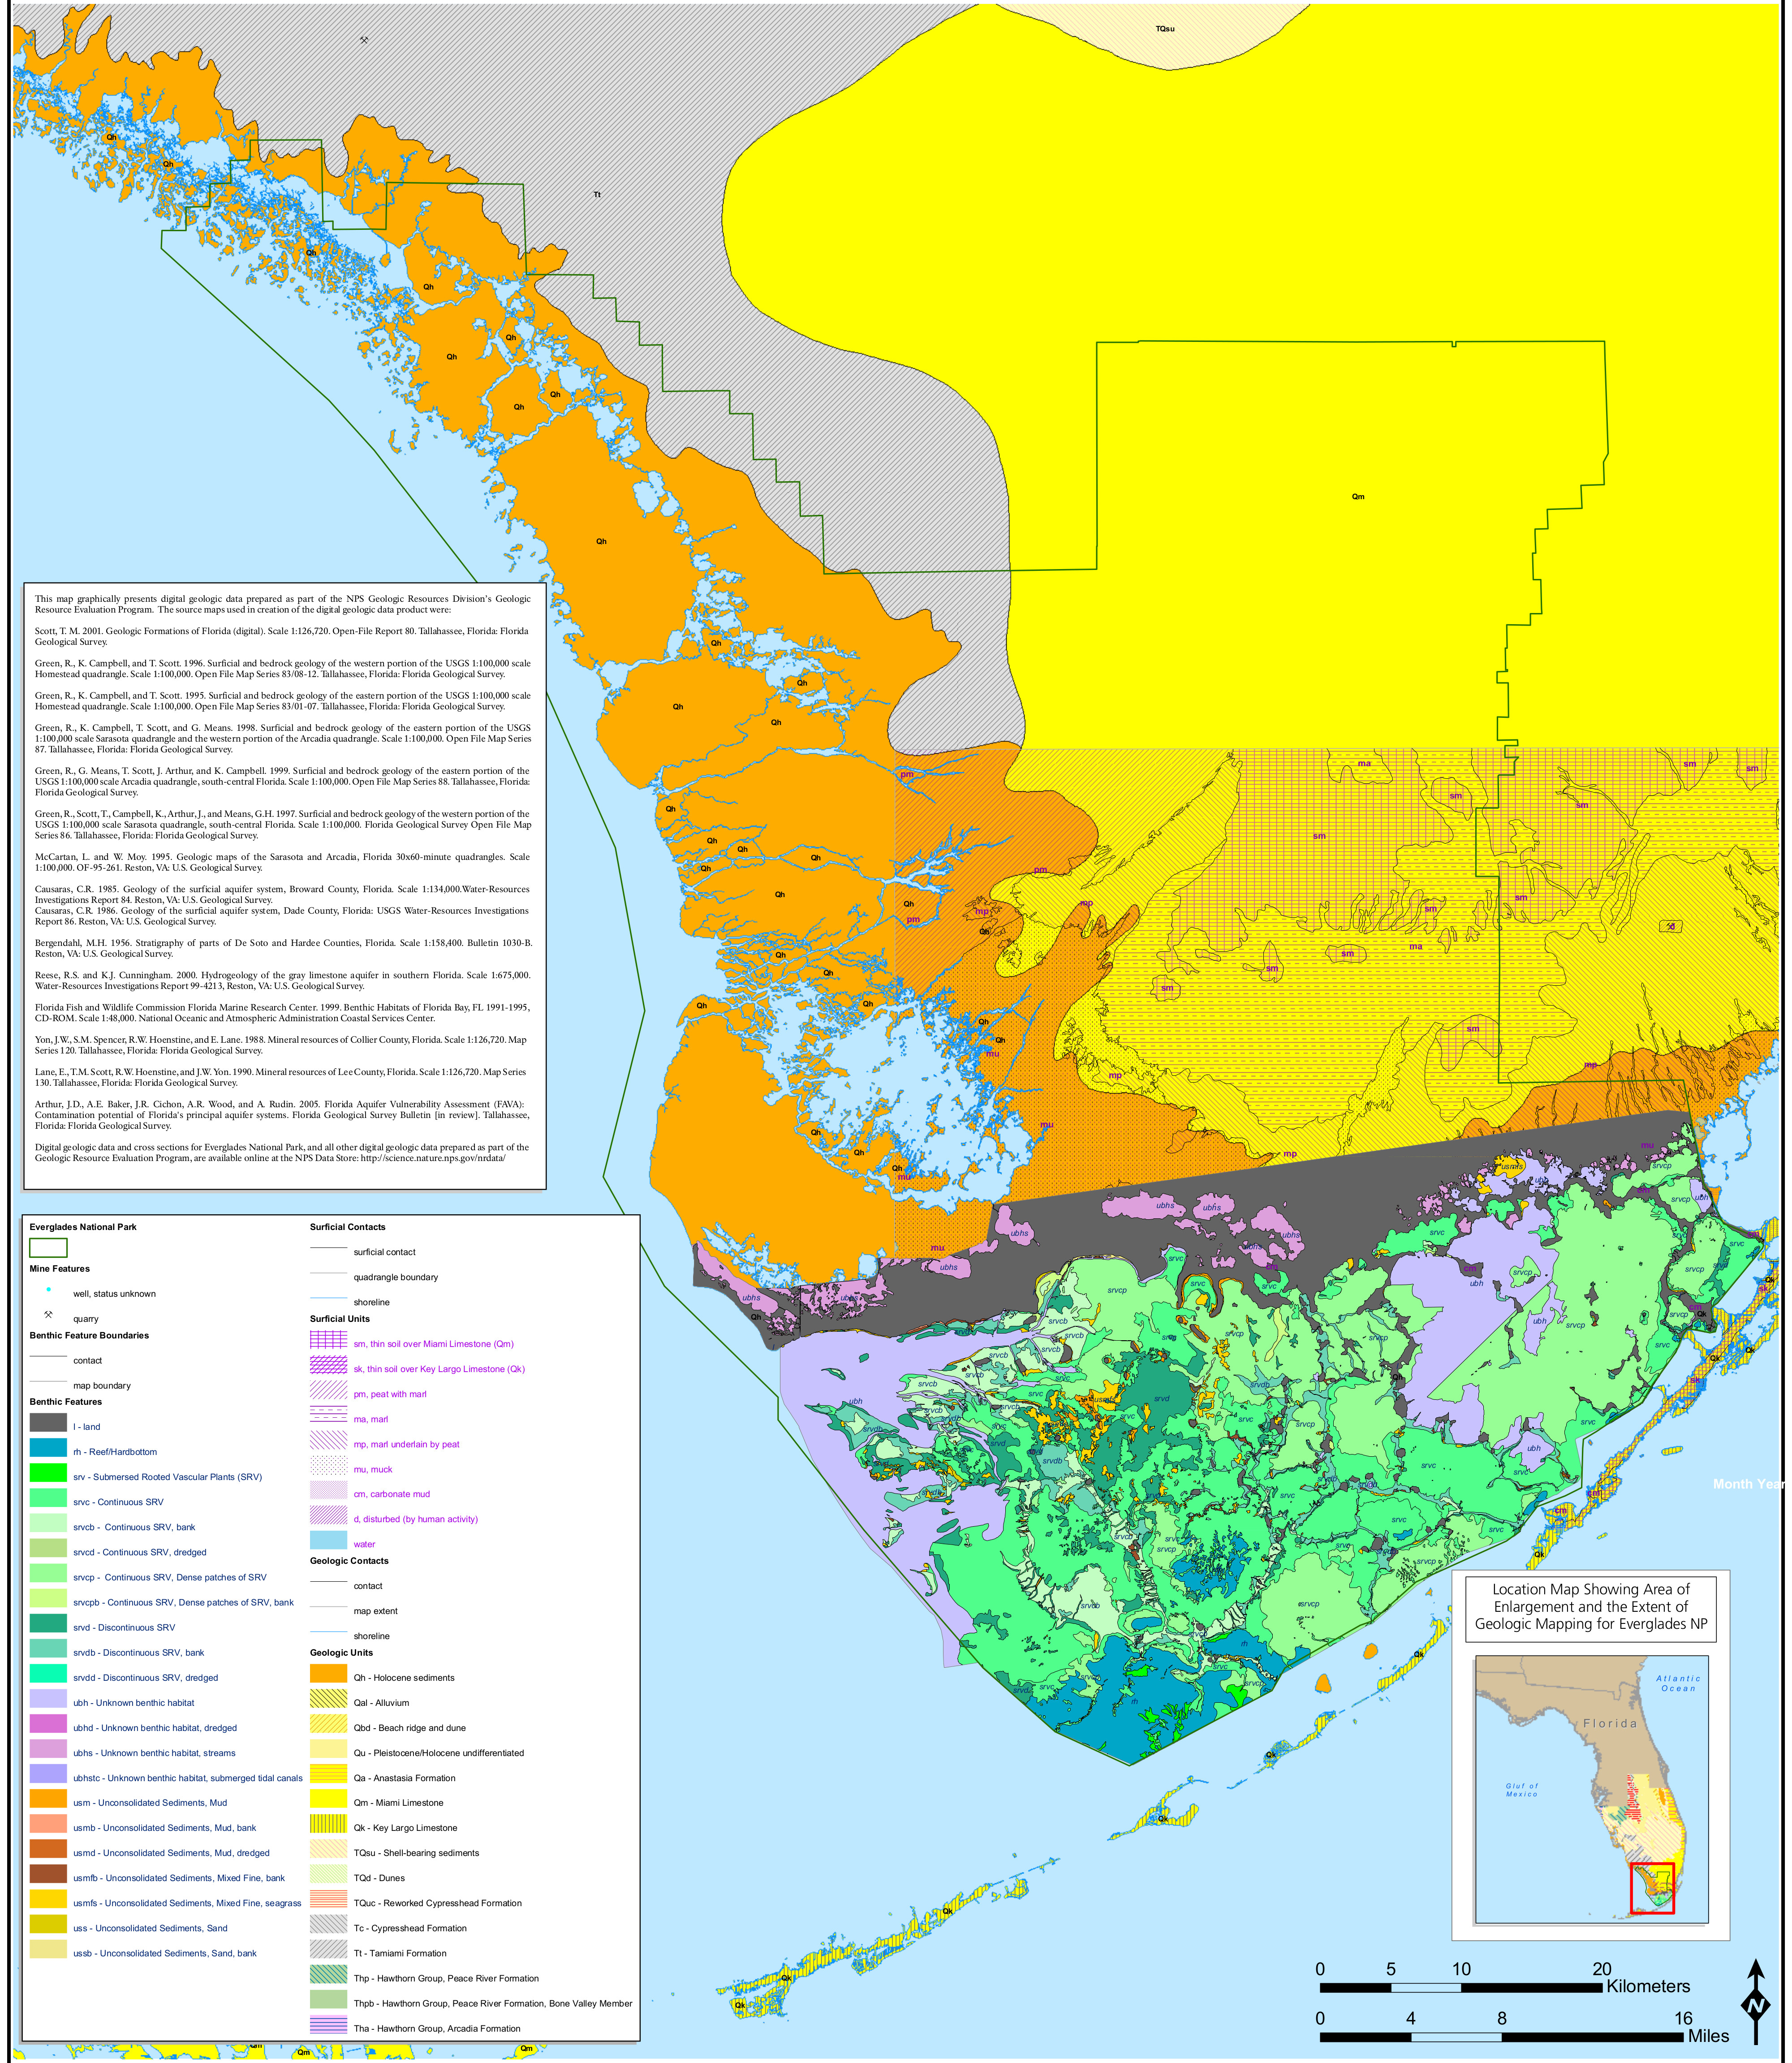 Everglades Maps | NPMaps.com - just free maps, period. on redwood national park map, mesa verde national park colorado map, lower suwannee national wildlife refuge map, redwood national and state parks, gator park everglades map, orlando accommodations map, tropical forest biome on world map, shenandoah national park google map, mesa verde national park, city of rocks national reserve map, olympic national park, yellowstone national park, watson island map, everglades city map, glacier national park, alligator alley, congaree national park, grand canyon national park, florida map, denali national park and preserve, biscayne national park, organ pipe cactus national monument map, 10000 islands map, big bend national park, denali national park and preserve map, shark valley, allapattah map, rocky mountain national park, yosemite national park, dry tortugas national park, great smoky mountains national park, carlsbad caverns national park, hawaii volcanoes national park, lake okeechobee, sequoia national park, banff national park on a map, sequoia national park map, parker river national wildlife refuge map, fakahatchee strand preserve state park map, everglades wilderness trail map,